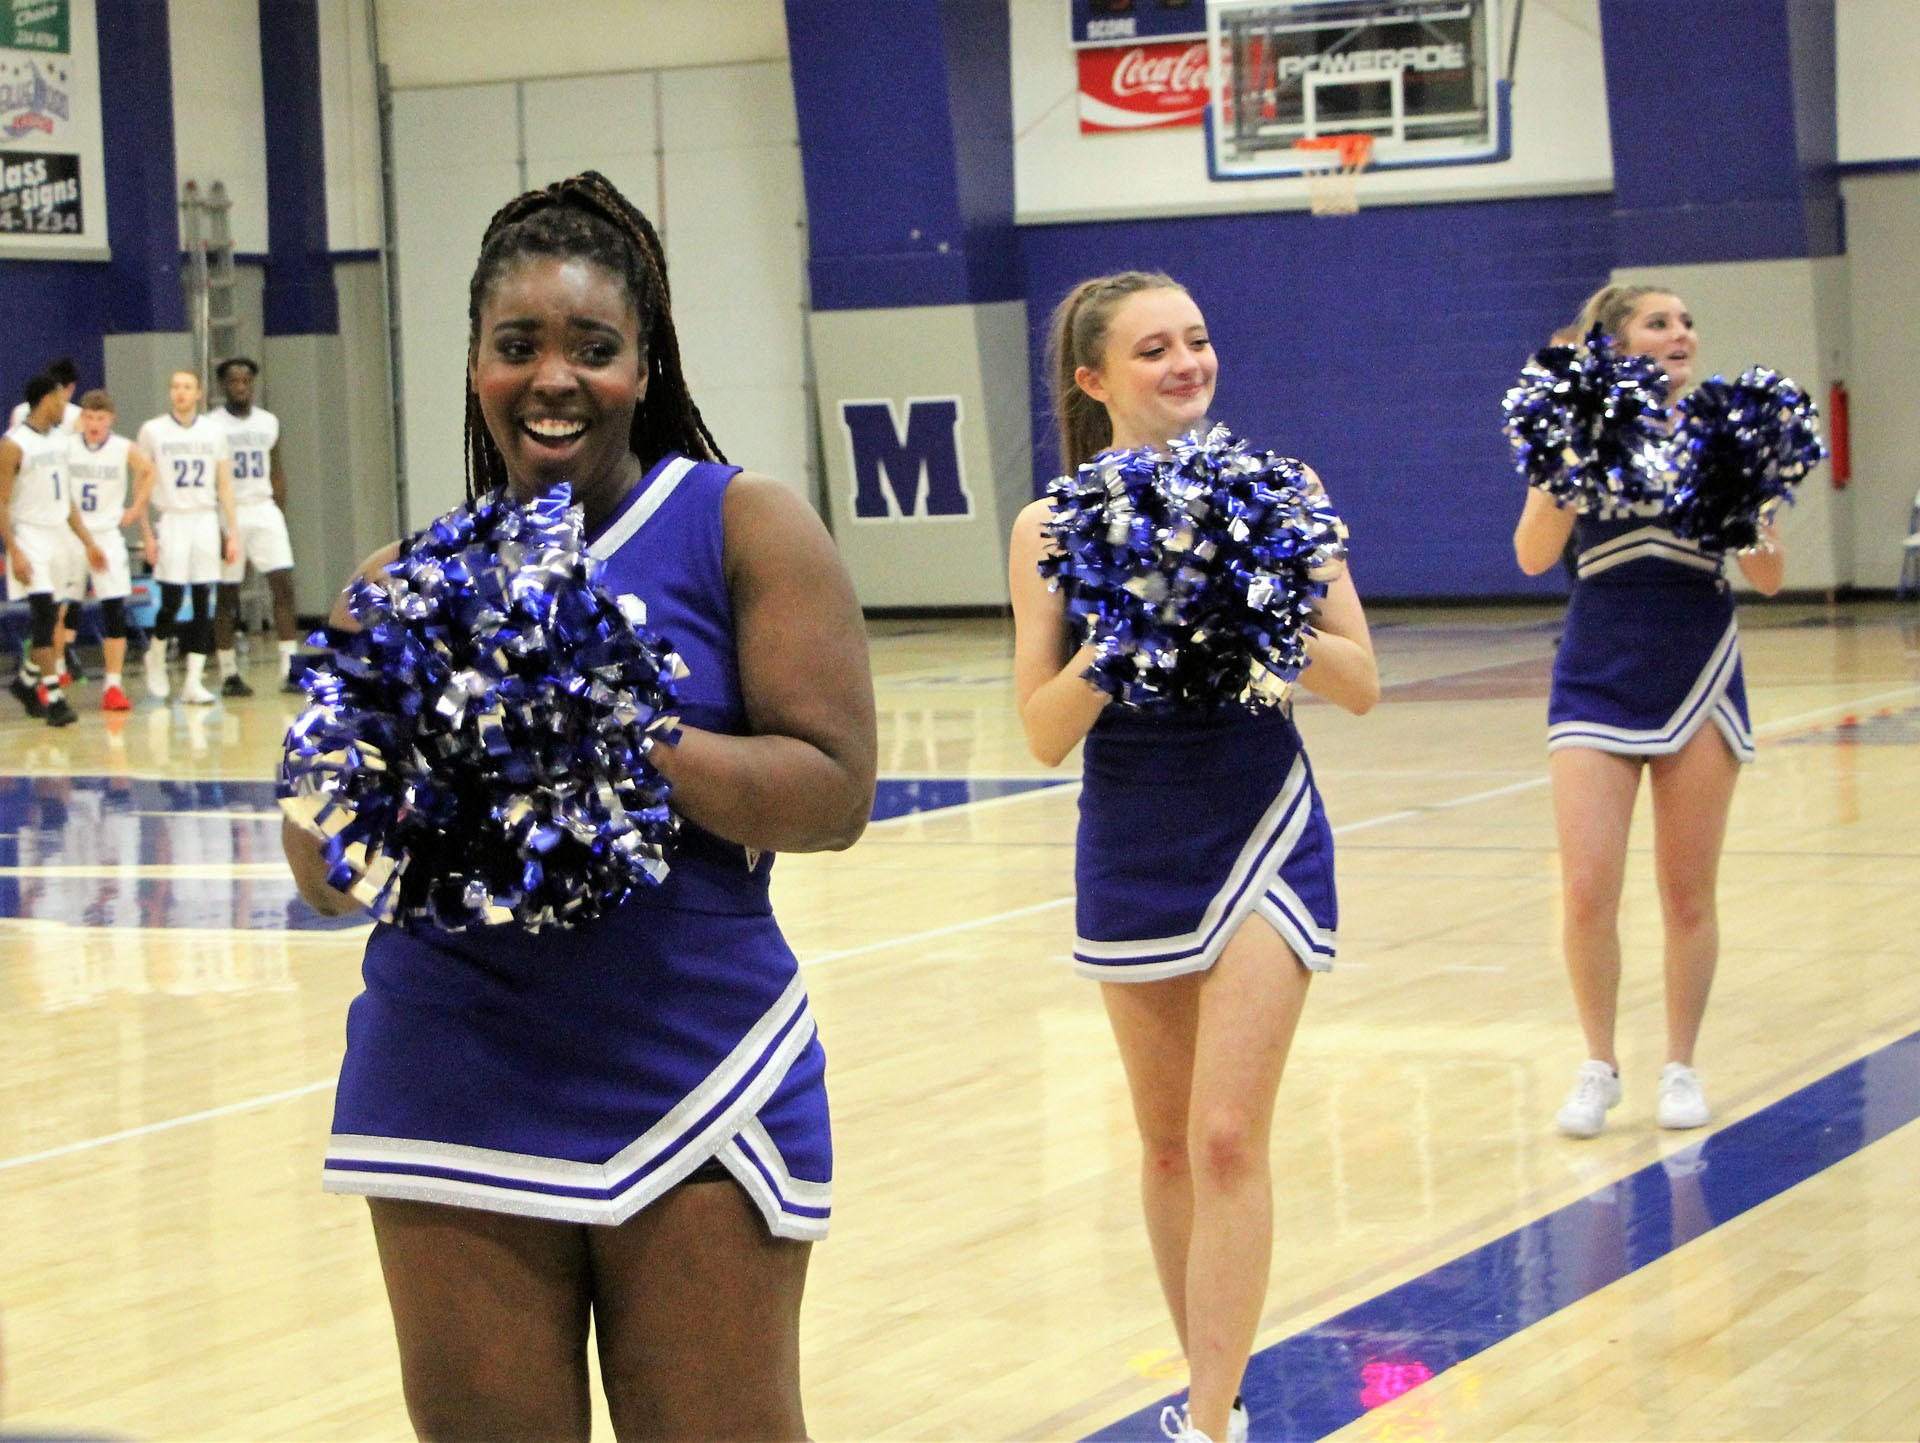 MCC cheerleaders Loundia Whicker, Shyla Greer, and Ashley Becker cheer on the Pioneers.STAR PHOTO/Sharon Moore